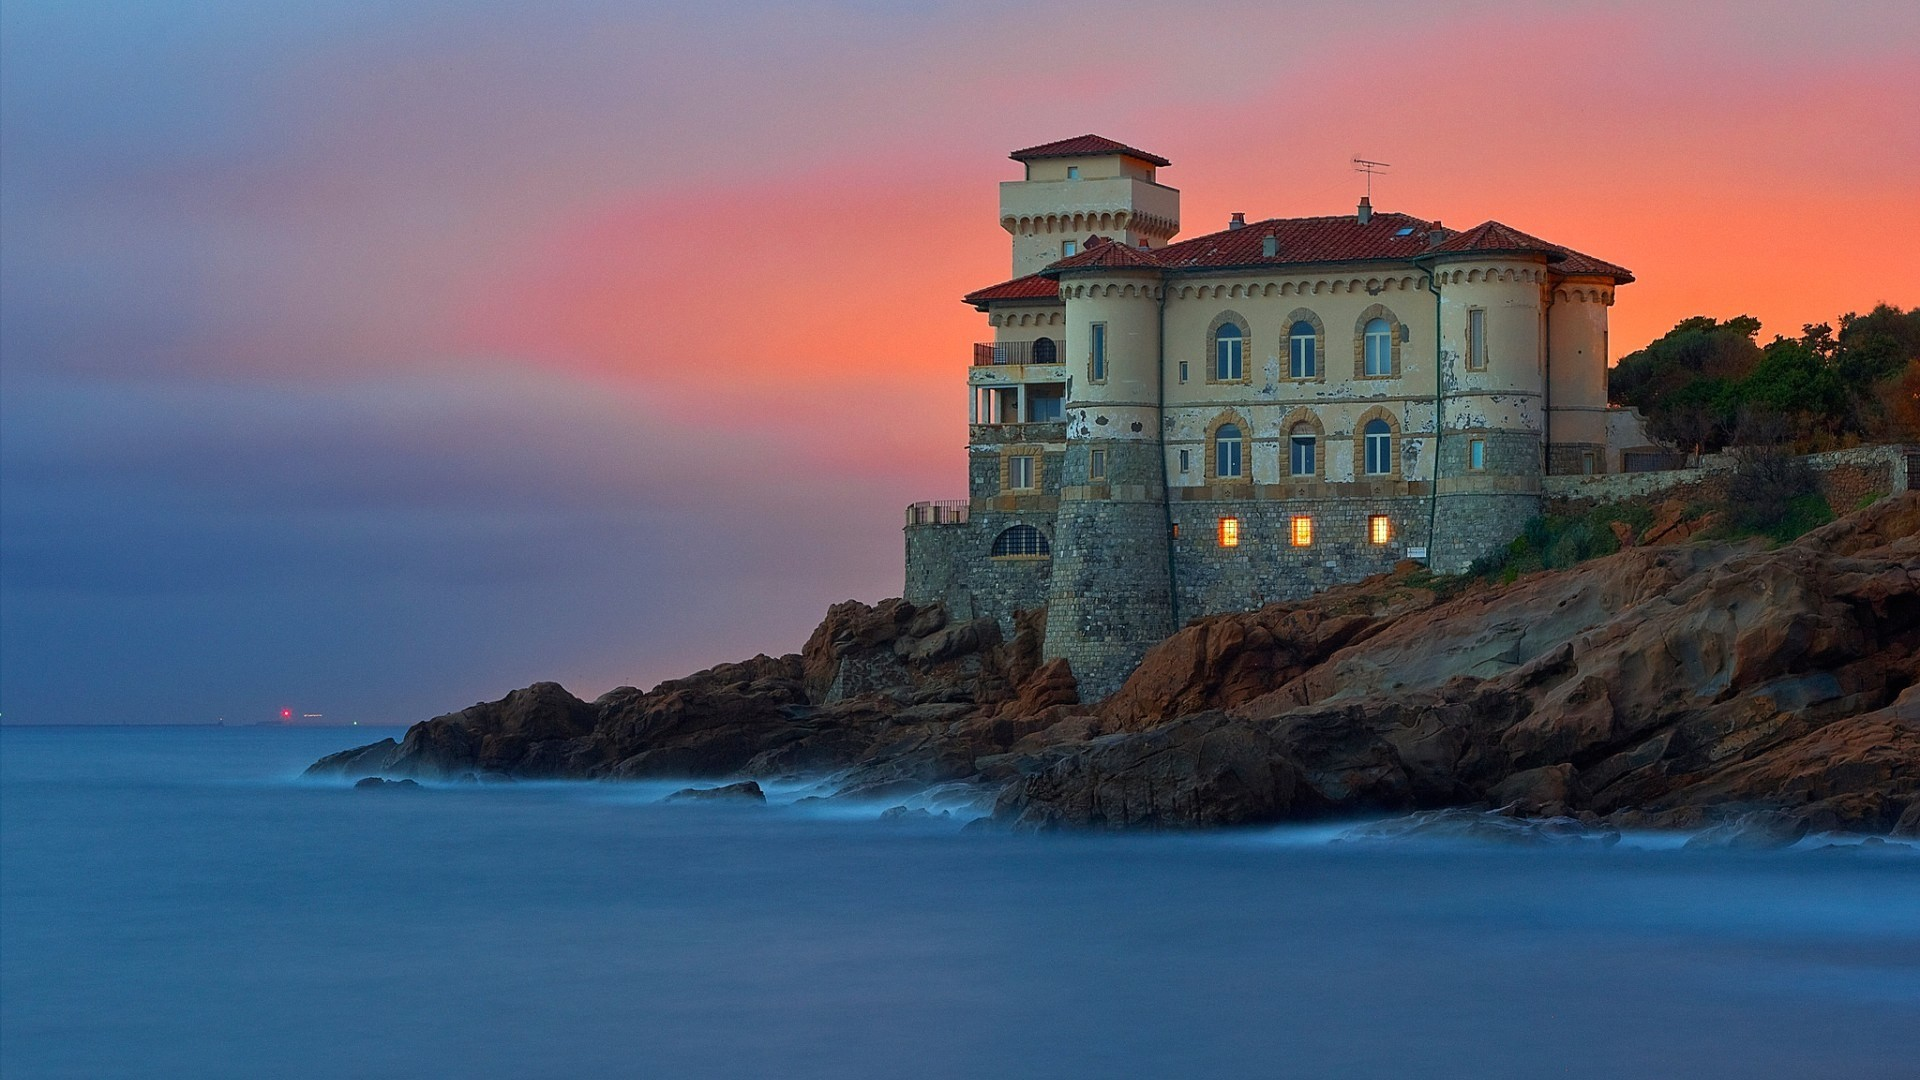 General 1920x1080 architecture building old building water trees Italy castle sunset sea rock lights evening waves long exposure Castello del Boccale